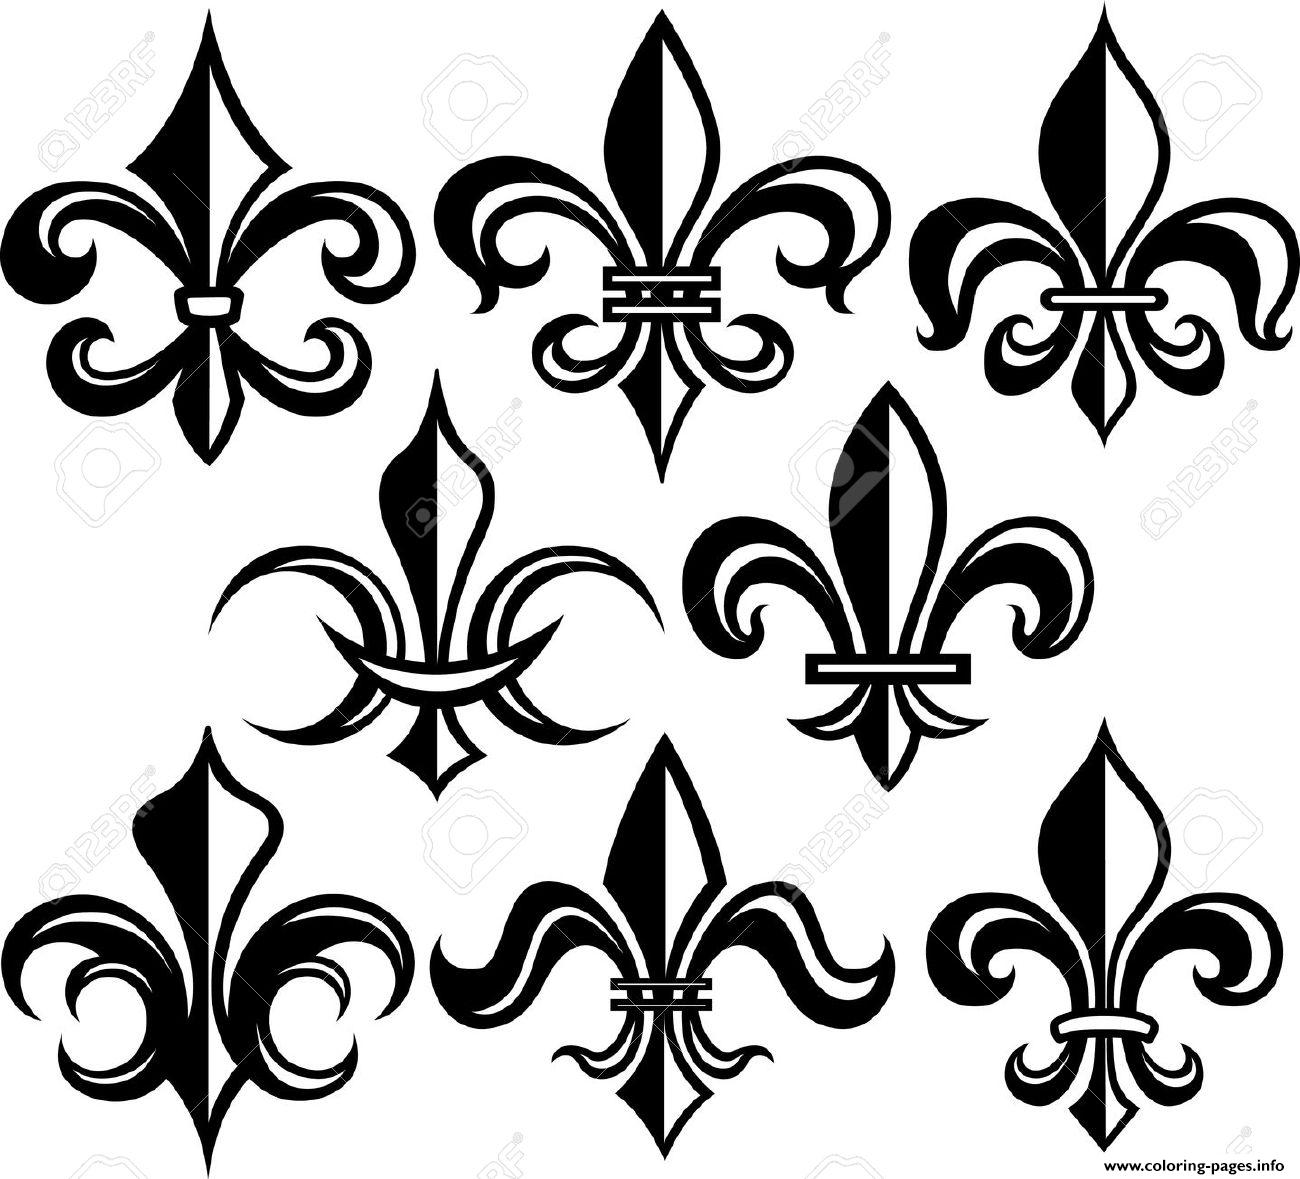 photograph regarding Fleur De Lis Printable identify Fleur De Lis Refreshing Orleans Inventory Vector Coloring Web pages Printable